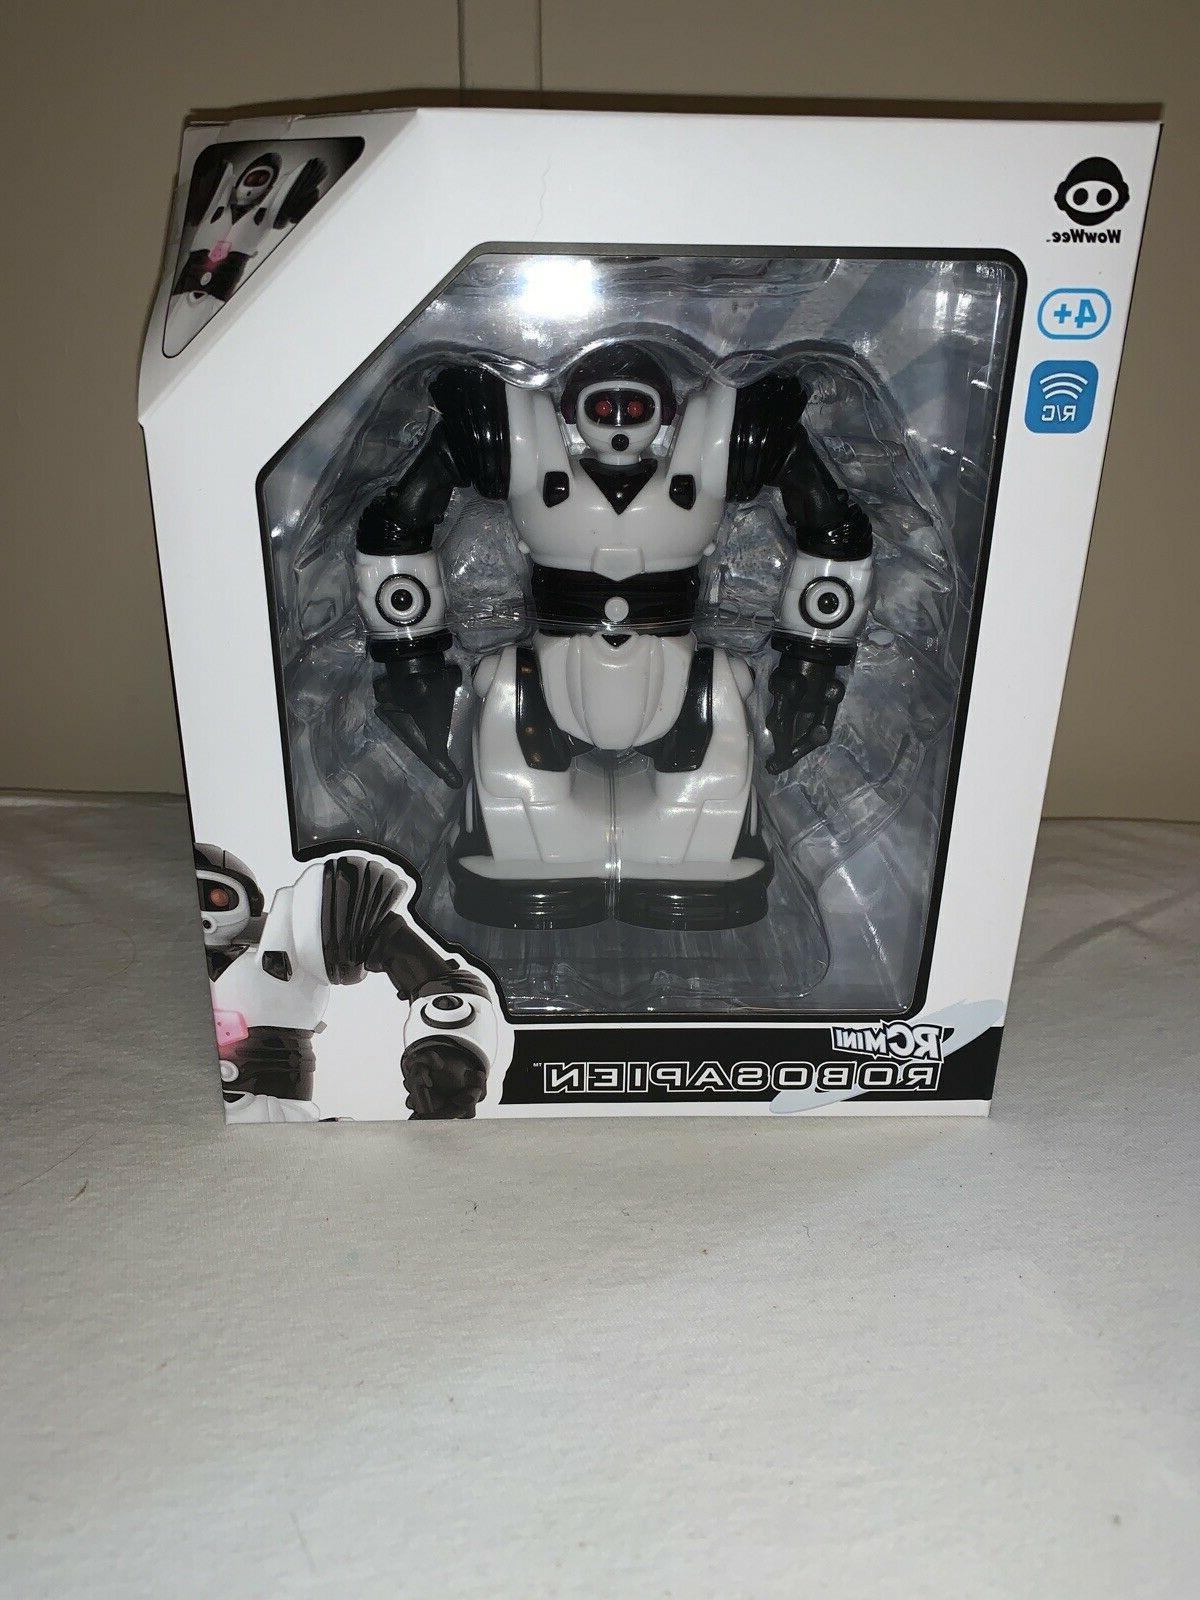 WowWee RC Edition Robot